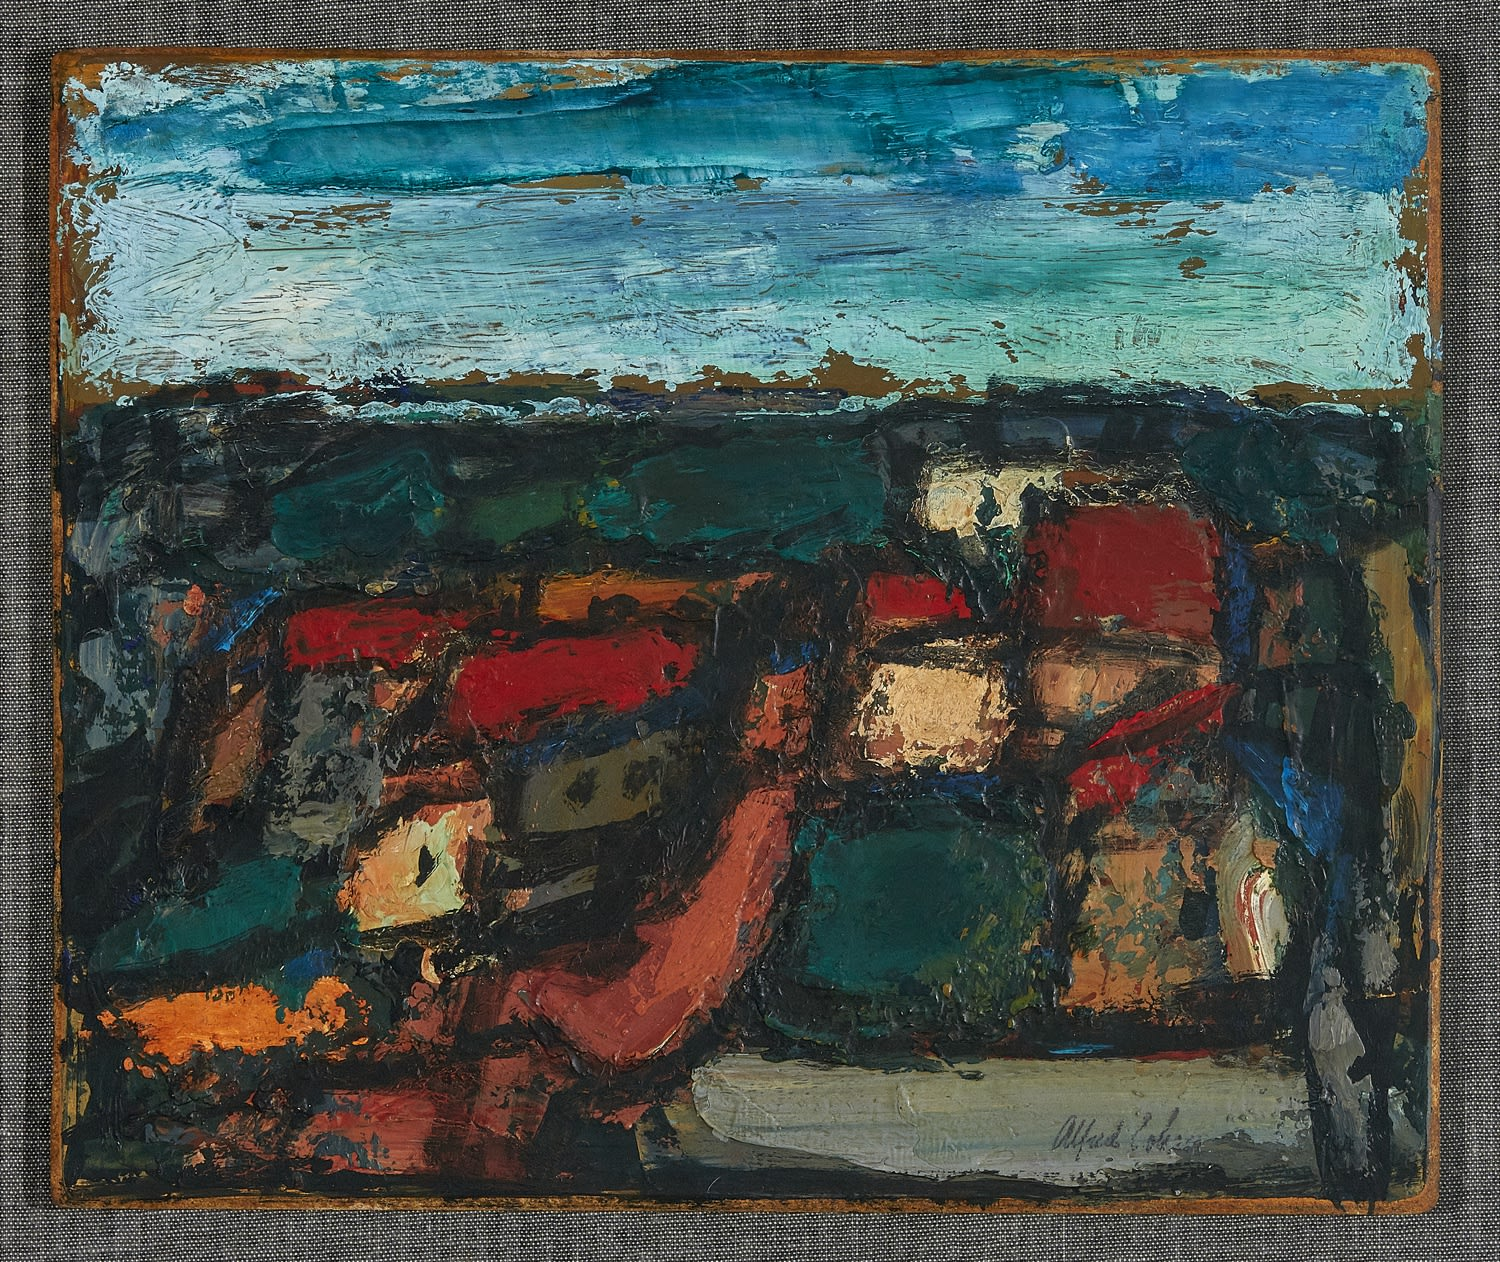 Alfred Cohen (1920-2001) Near Goudhurst 1965 Oil on board 24.8 x 29.9 cm Collection: Diana Cohen © Estate of Alfred Cohen 2020